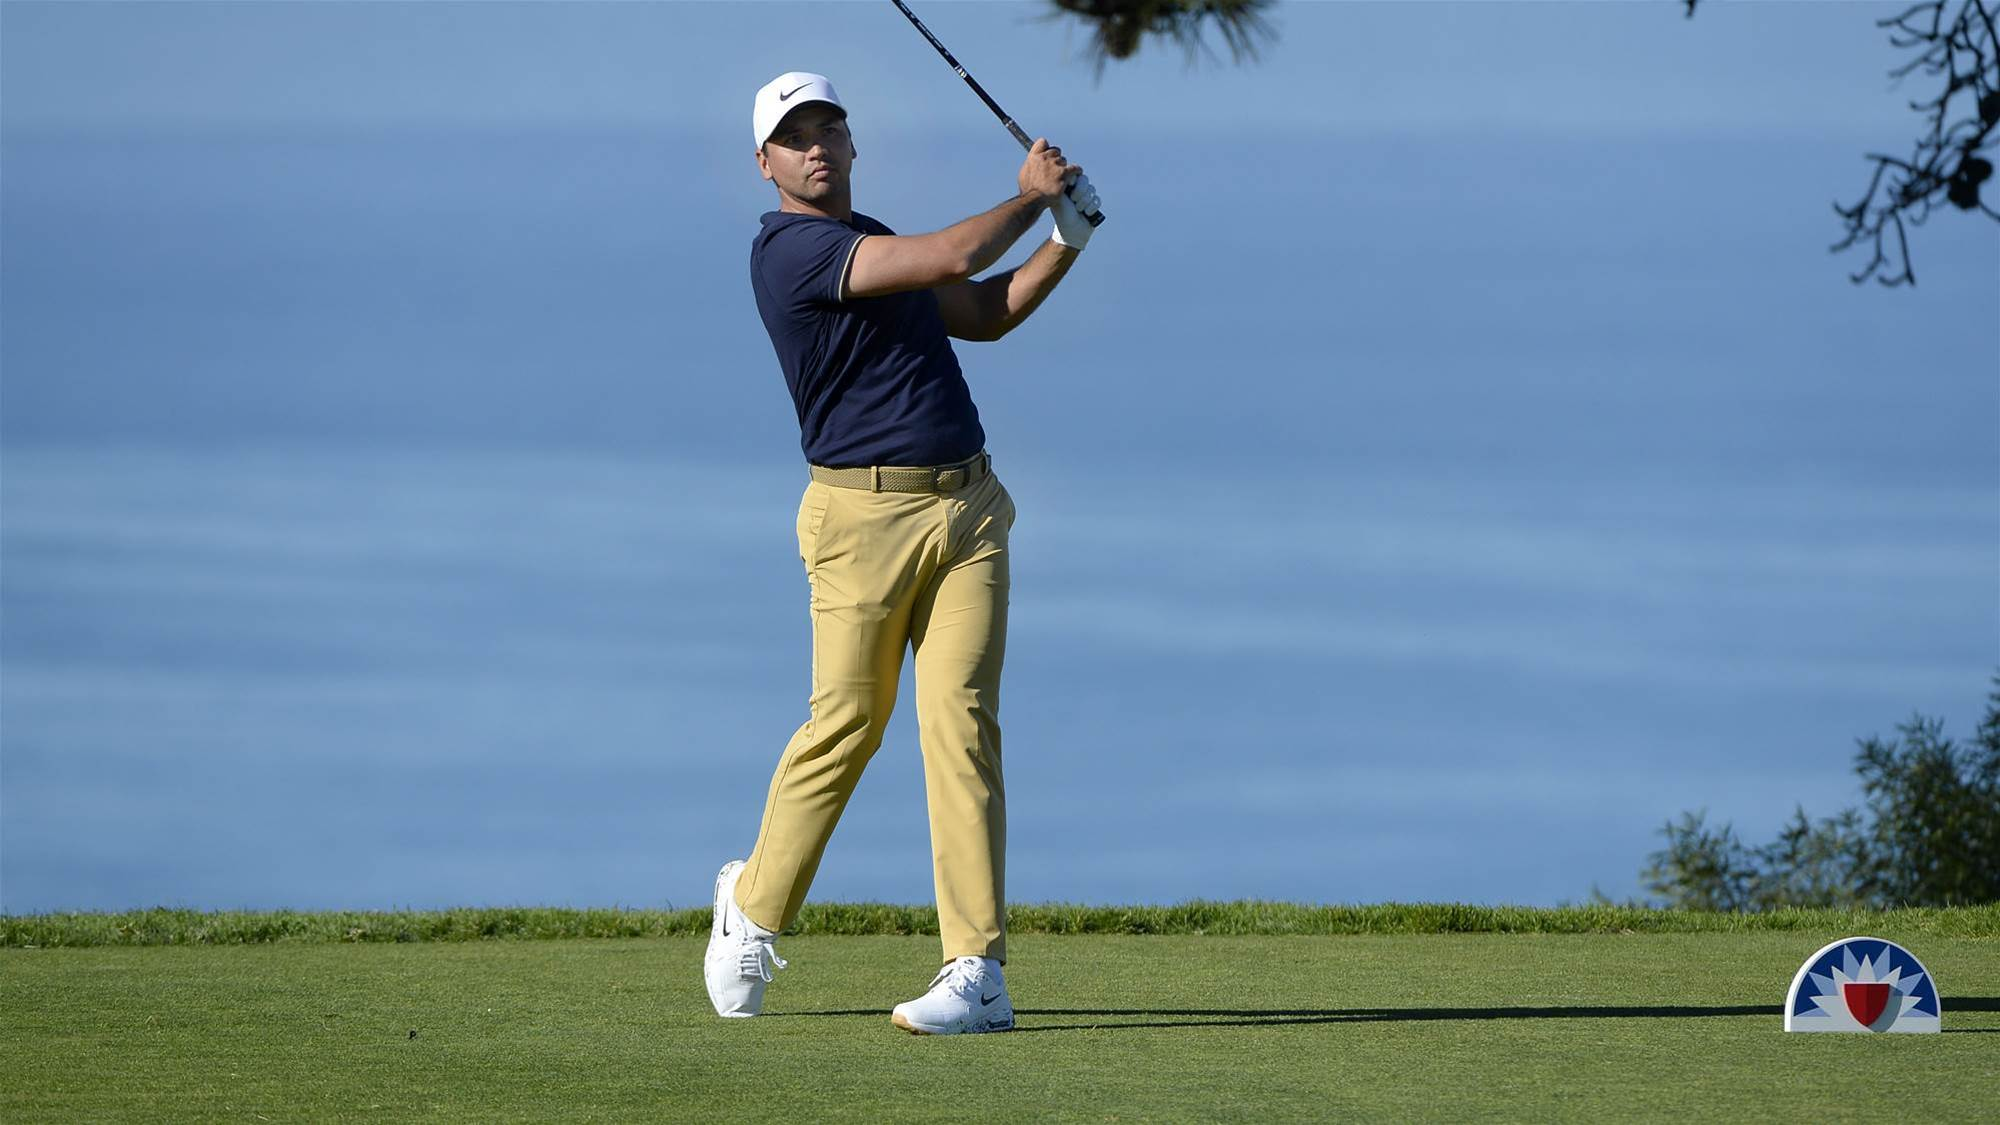 Defending Day in the mix at Torrey Pines